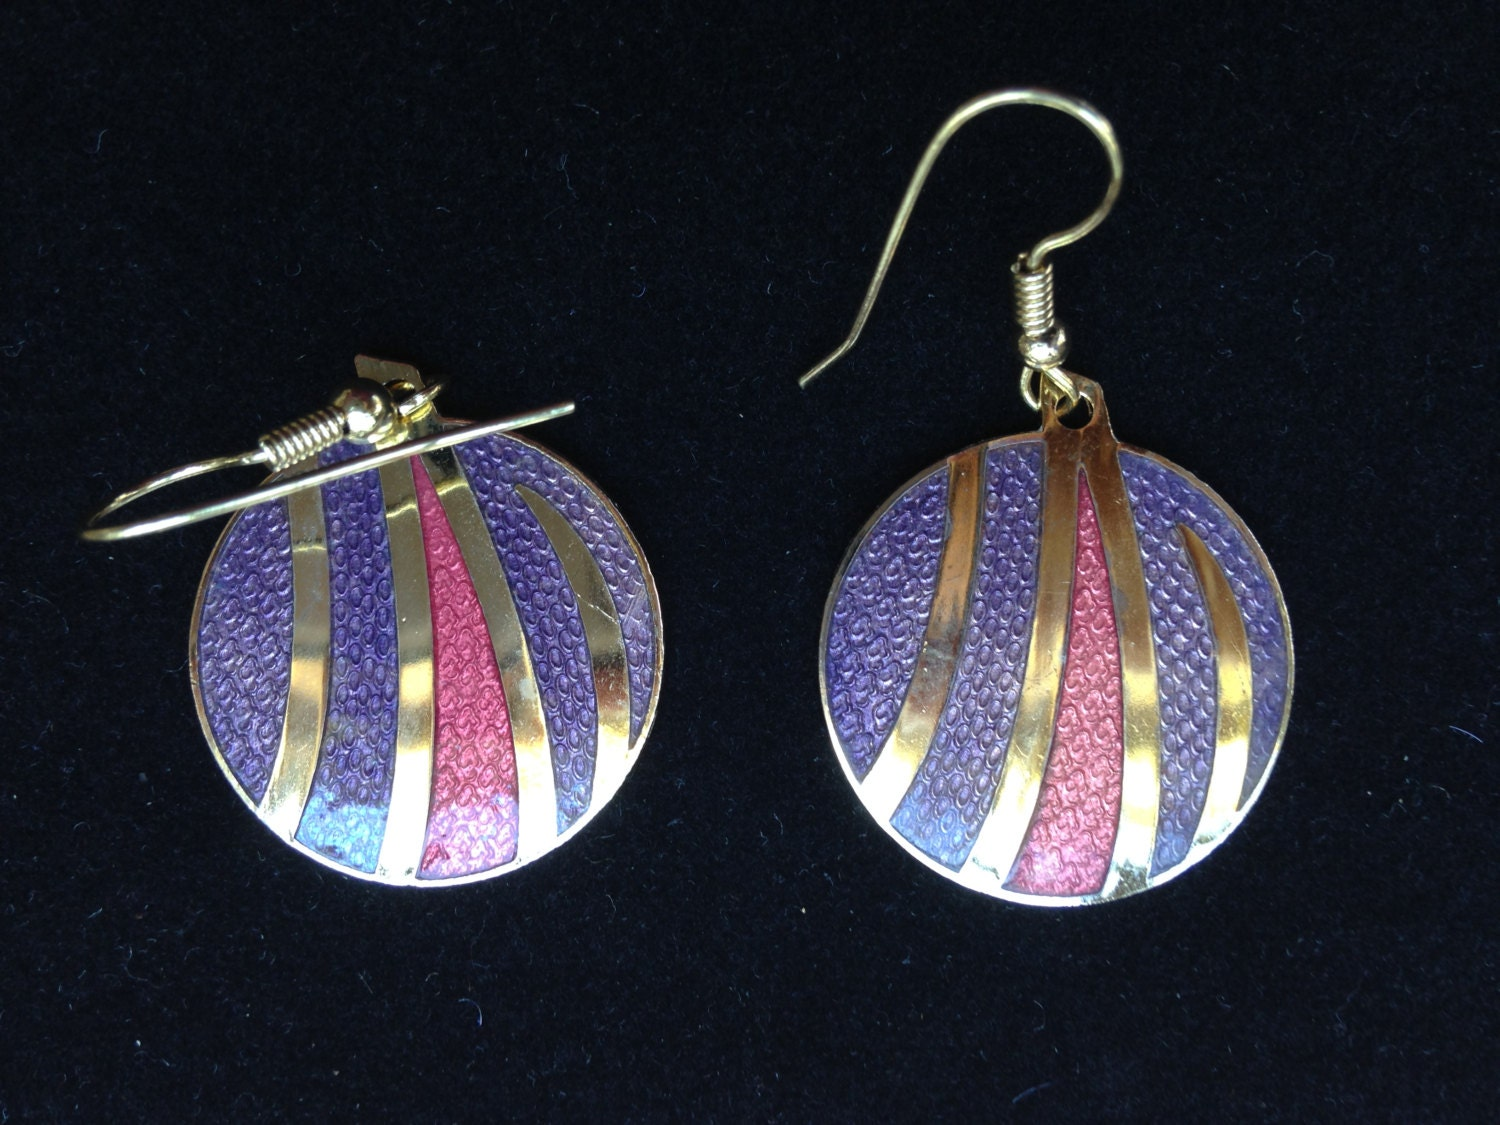 vintage enamel earrings cloisonne earrings dangle earrings